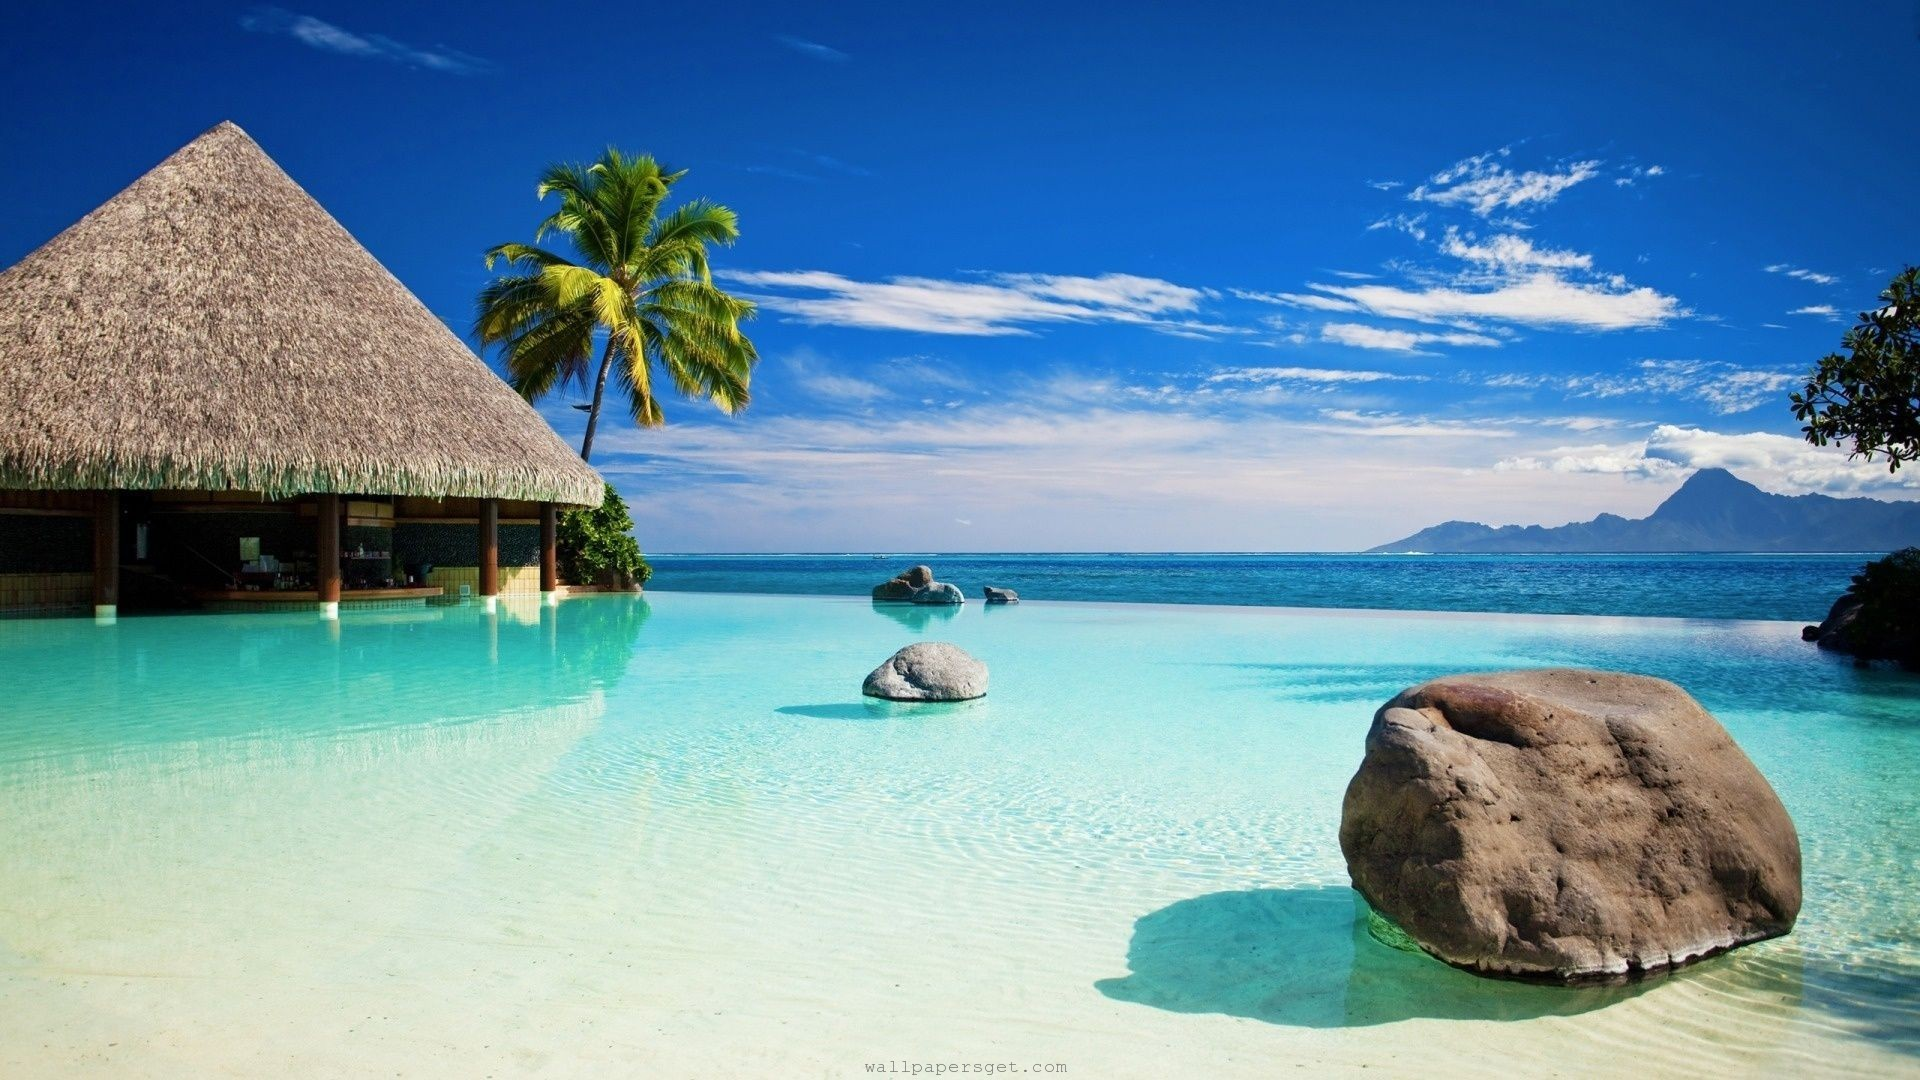 Tropical Island Wallpapers 67 Images